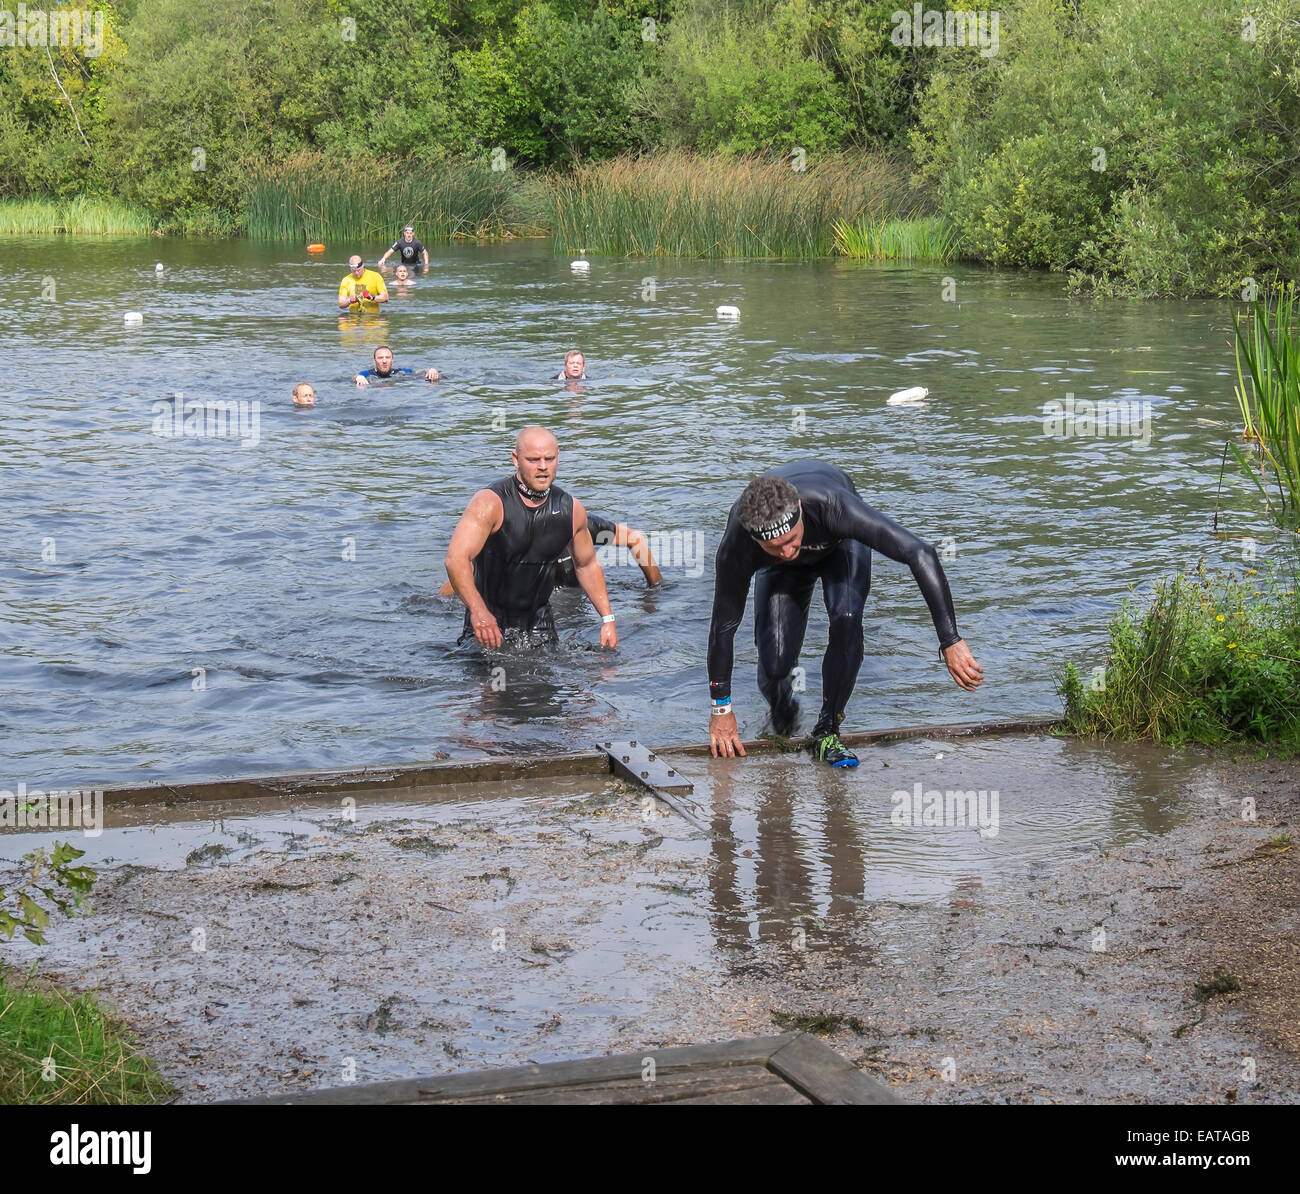 competitors-leaving-water-obstacle-spart